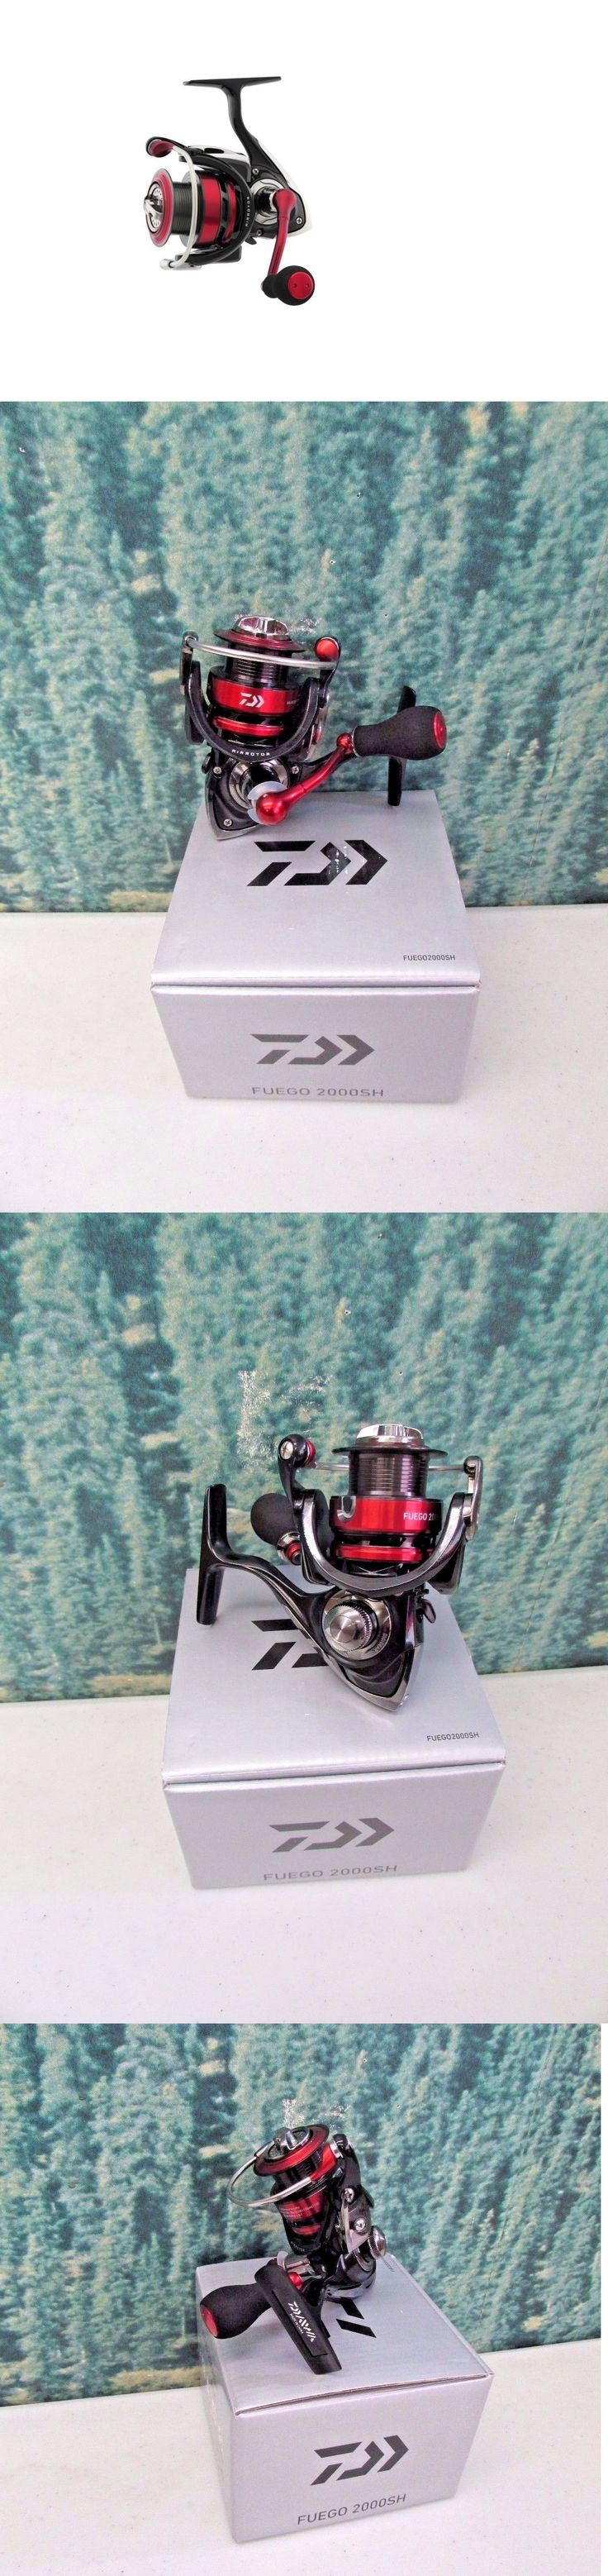 Spinning Reels 36147: Daiwa Fuego 6.0:1 Spinning Reel Fuego2000sh ~ New ~ Free Shipping -> BUY IT NOW ONLY: $78.88 on eBay!